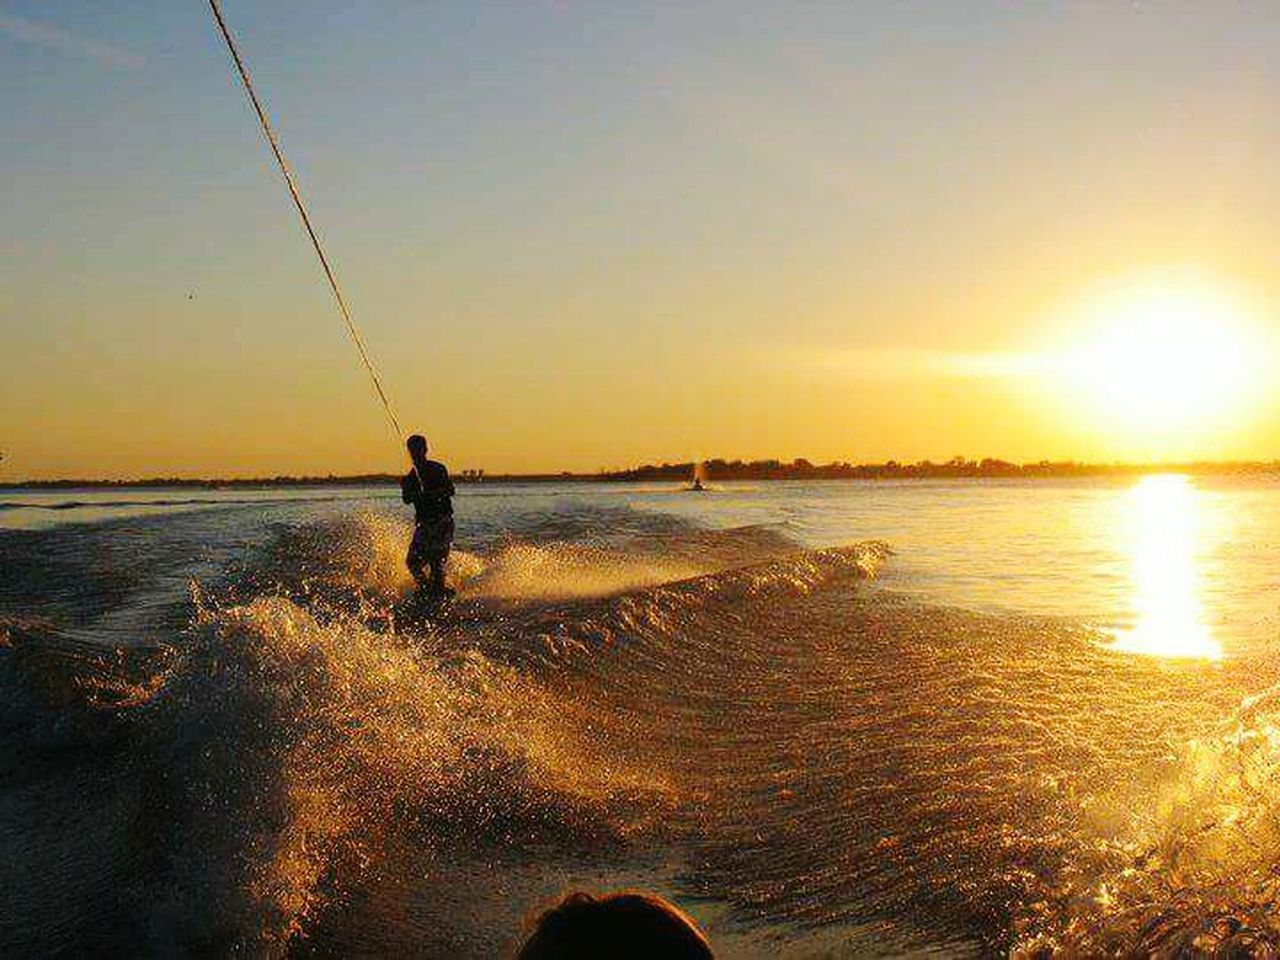 sunset, sea, one person, fishing, real people, silhouette, water, nature, standing, leisure activity, weekend activities, men, outdoors, holding, beauty in nature, sky, sun, vacations, sunlight, sport, fishing pole, horizon over water, scenics, extreme sports, lifestyles, adventure, one man only, wave, day, people